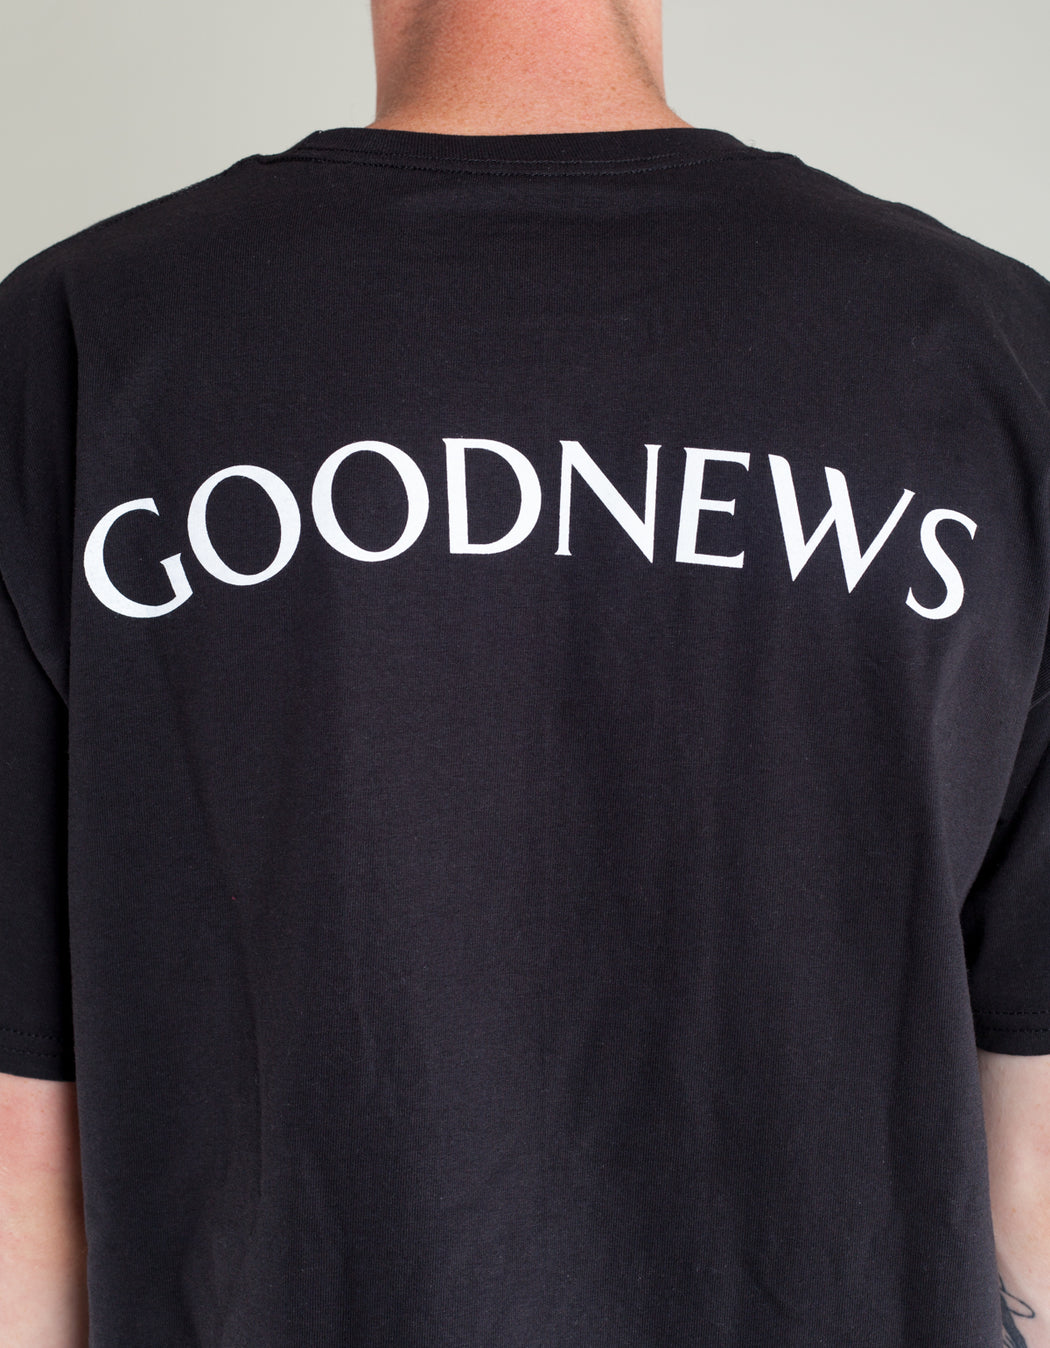 Goodnews Champion Team Tee Black